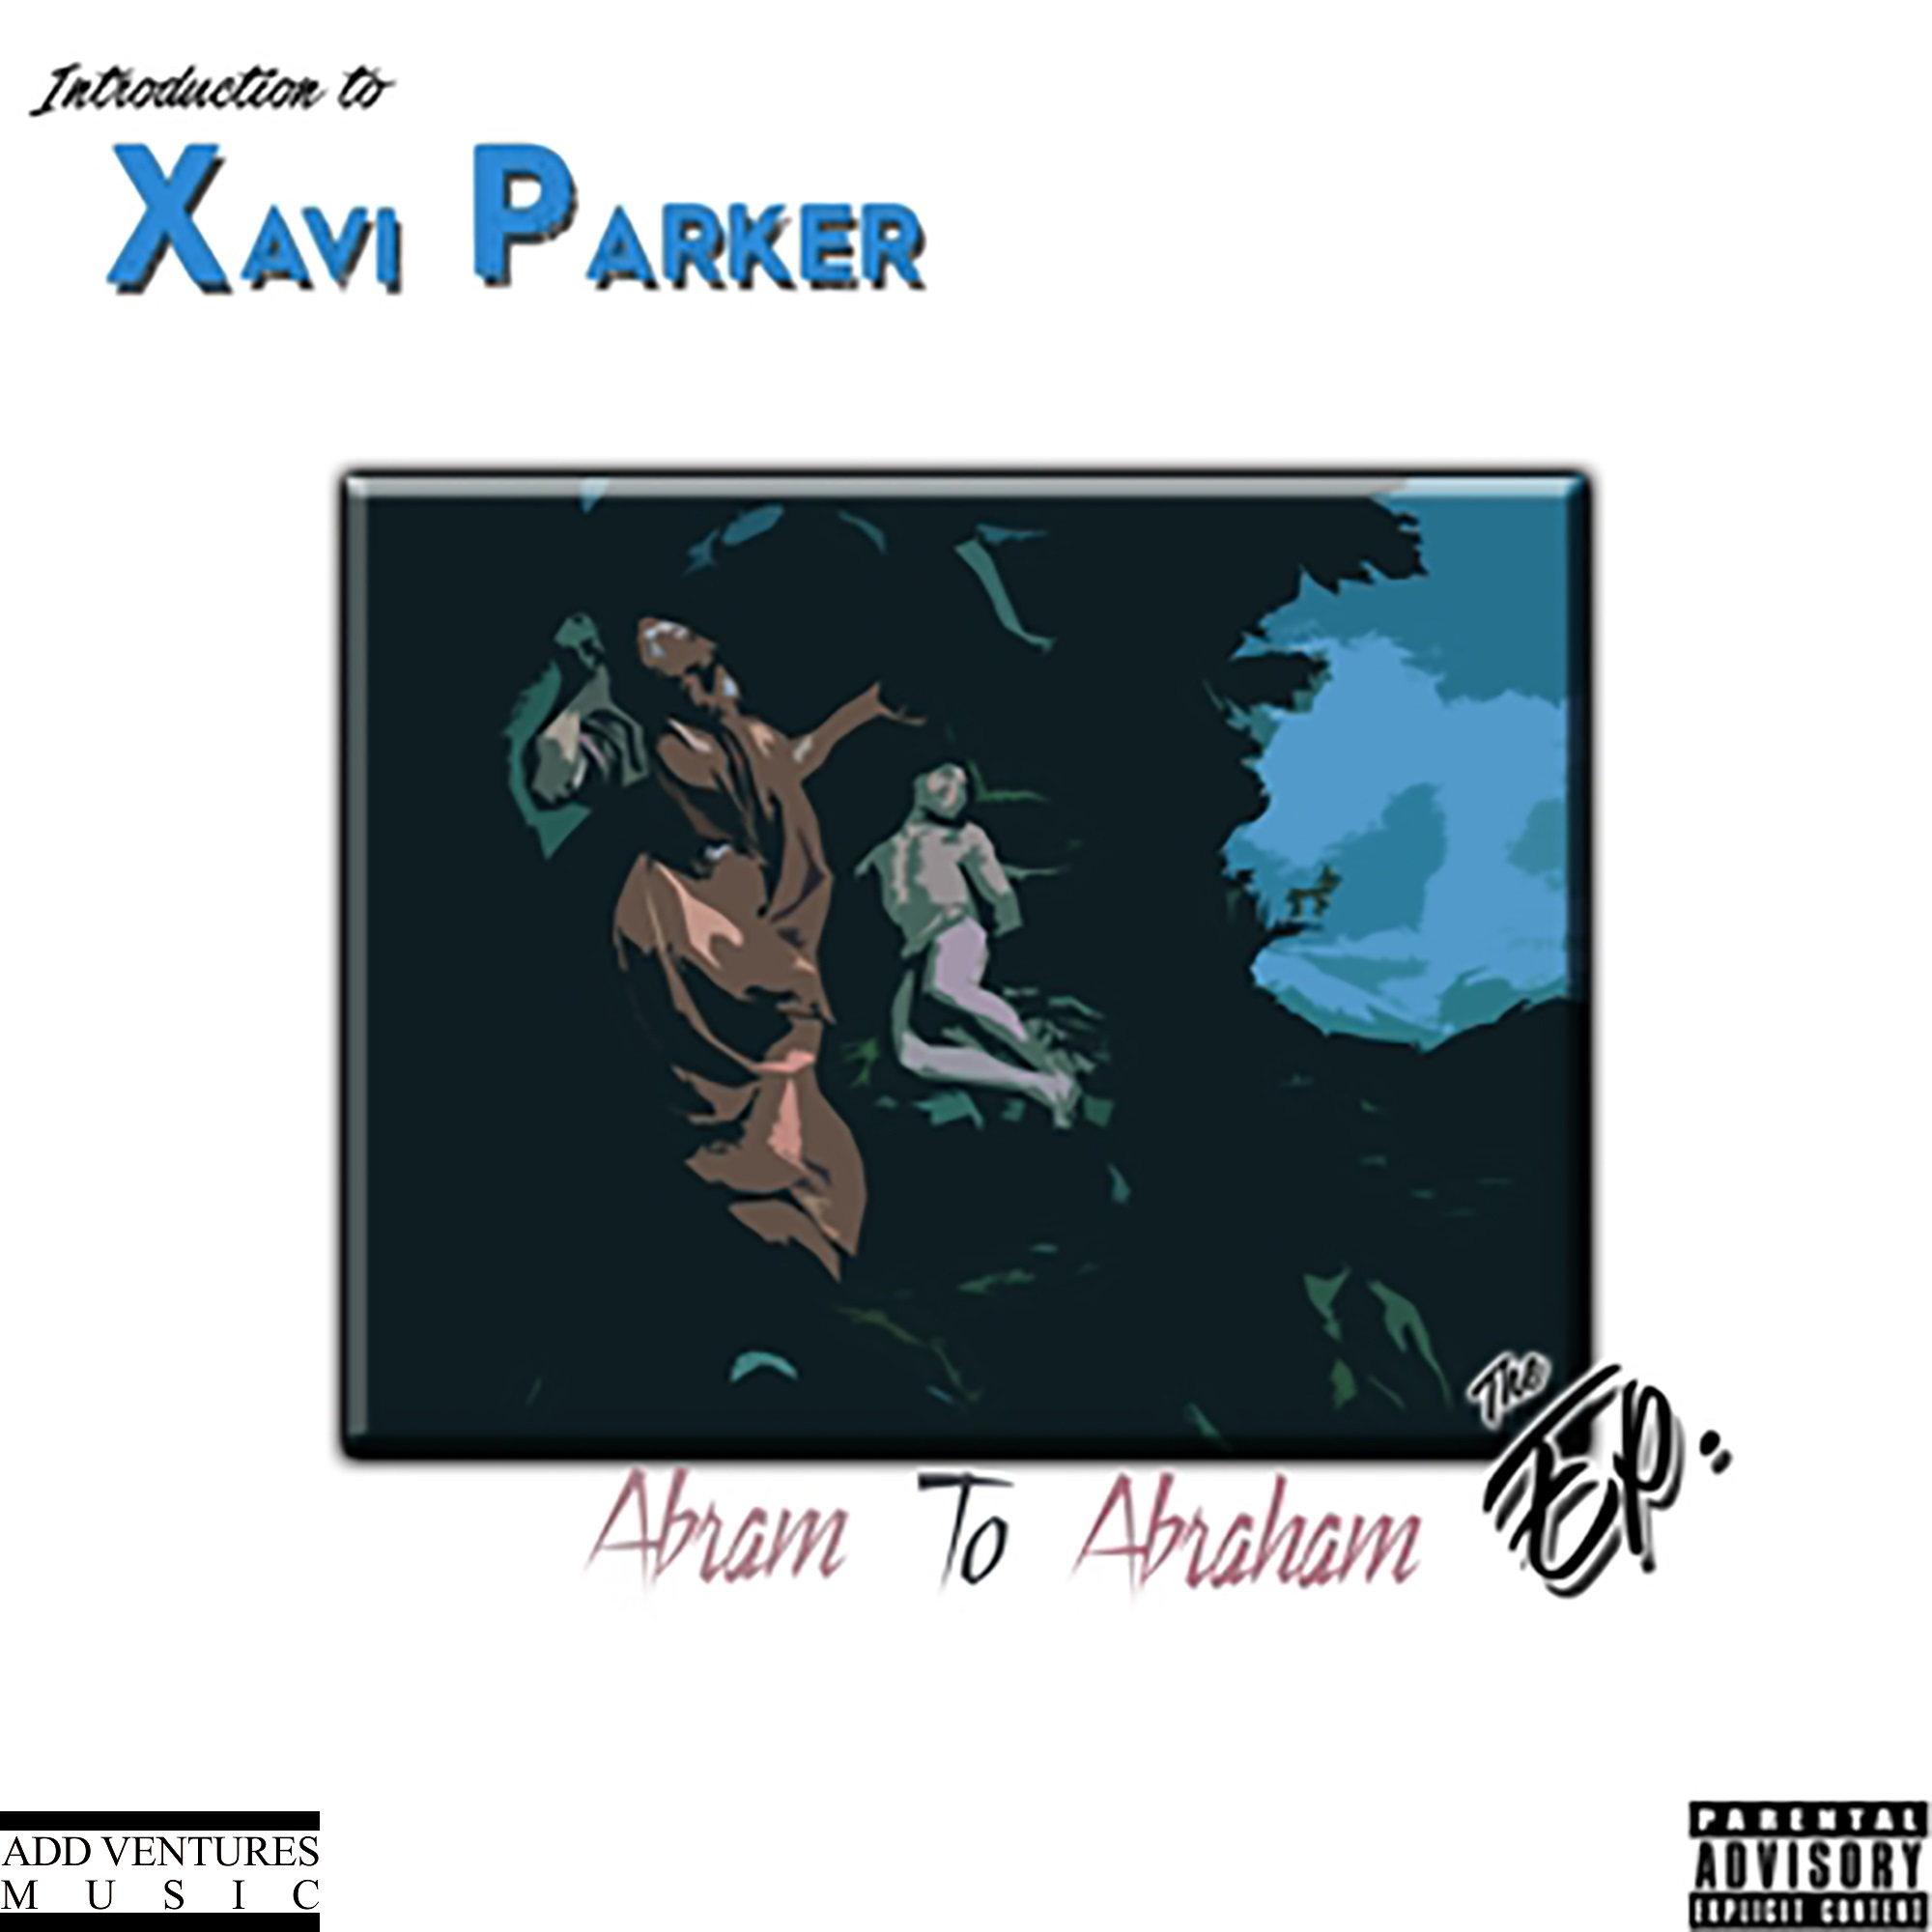 Xaxi Parker Abram to Abraham cover - Explicit.jpg